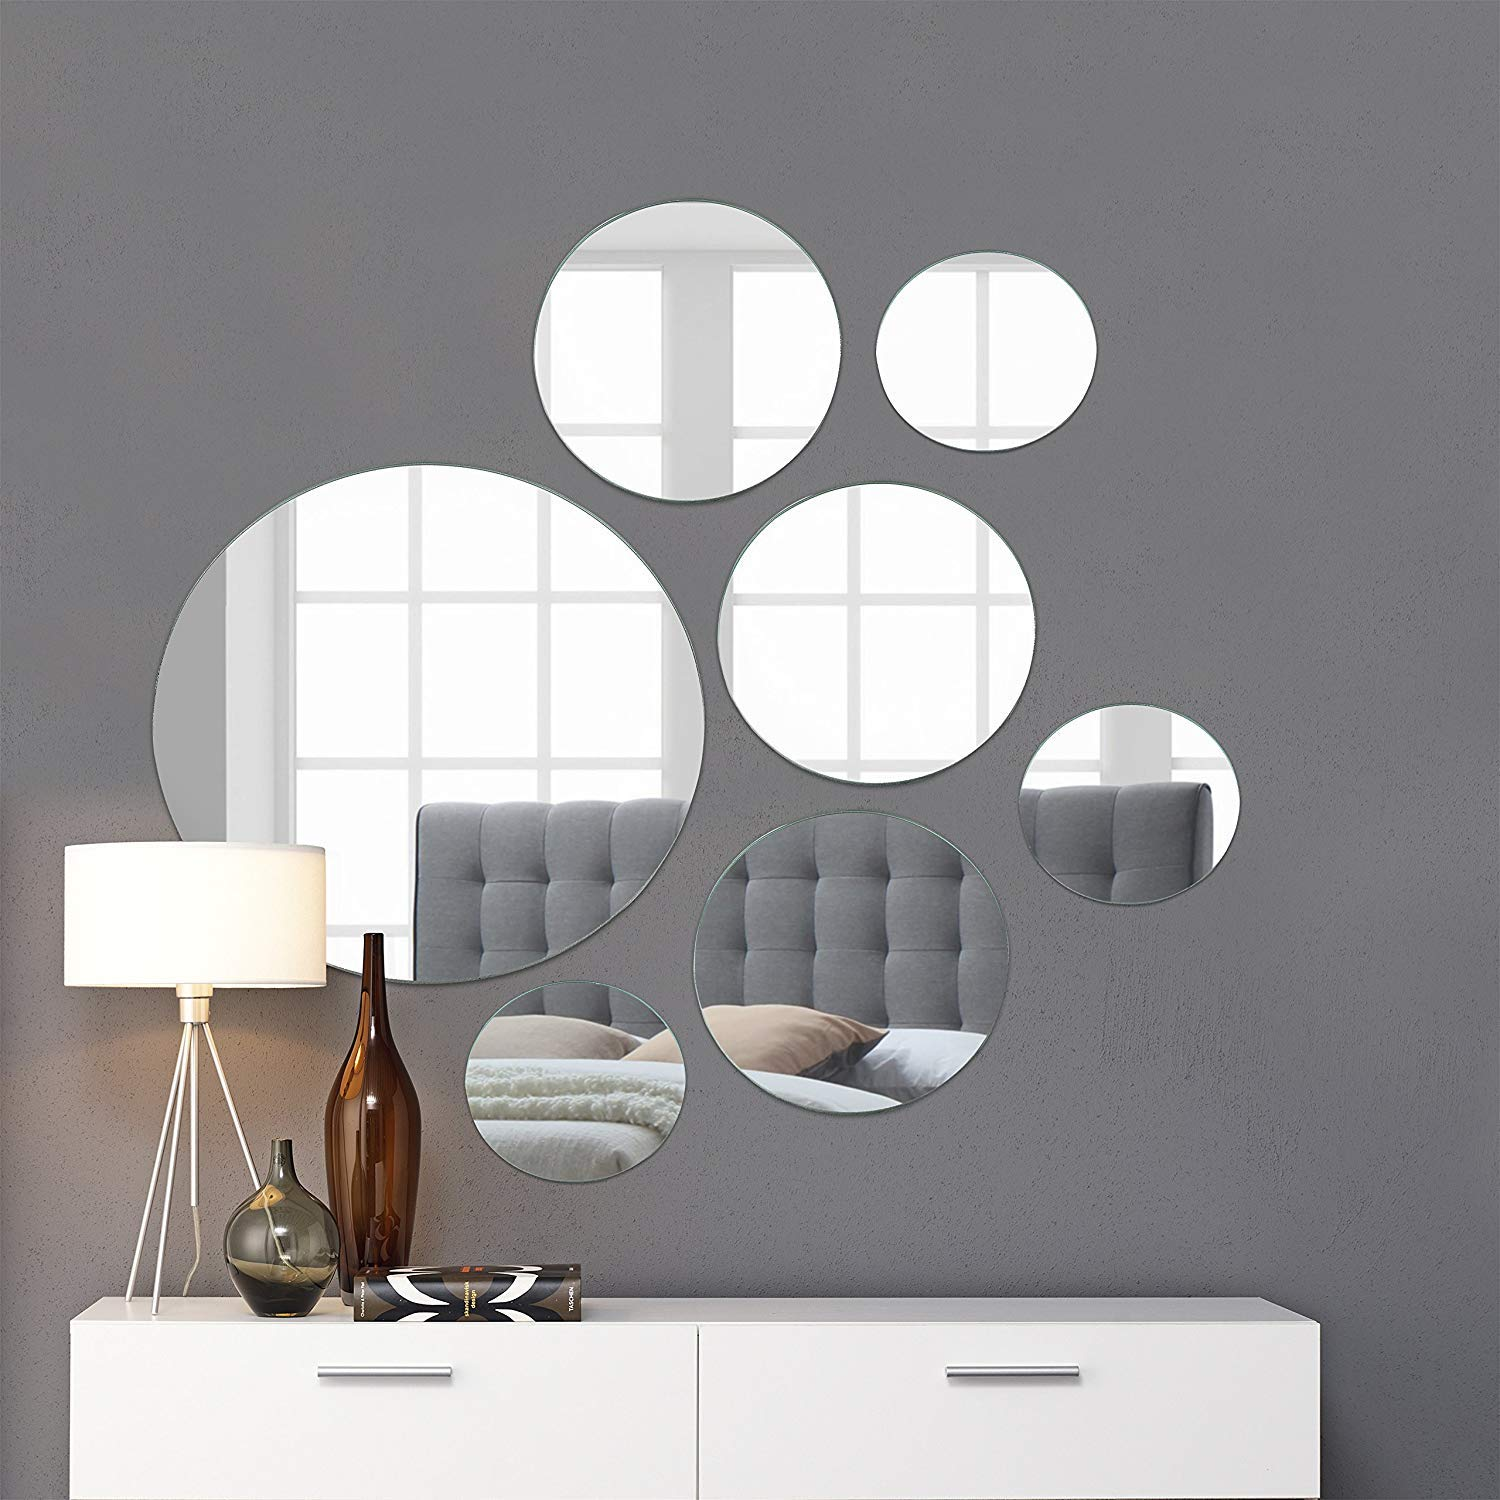 """Light In The Dark Large Round Mirror Wall Mounted Assorted Sizes (1x12"""", 3x9"""", 3x6"""") - Set of 7 Round Glass Mirrors Wall Decoration for Living Room, Bedroom or Bathroom."""